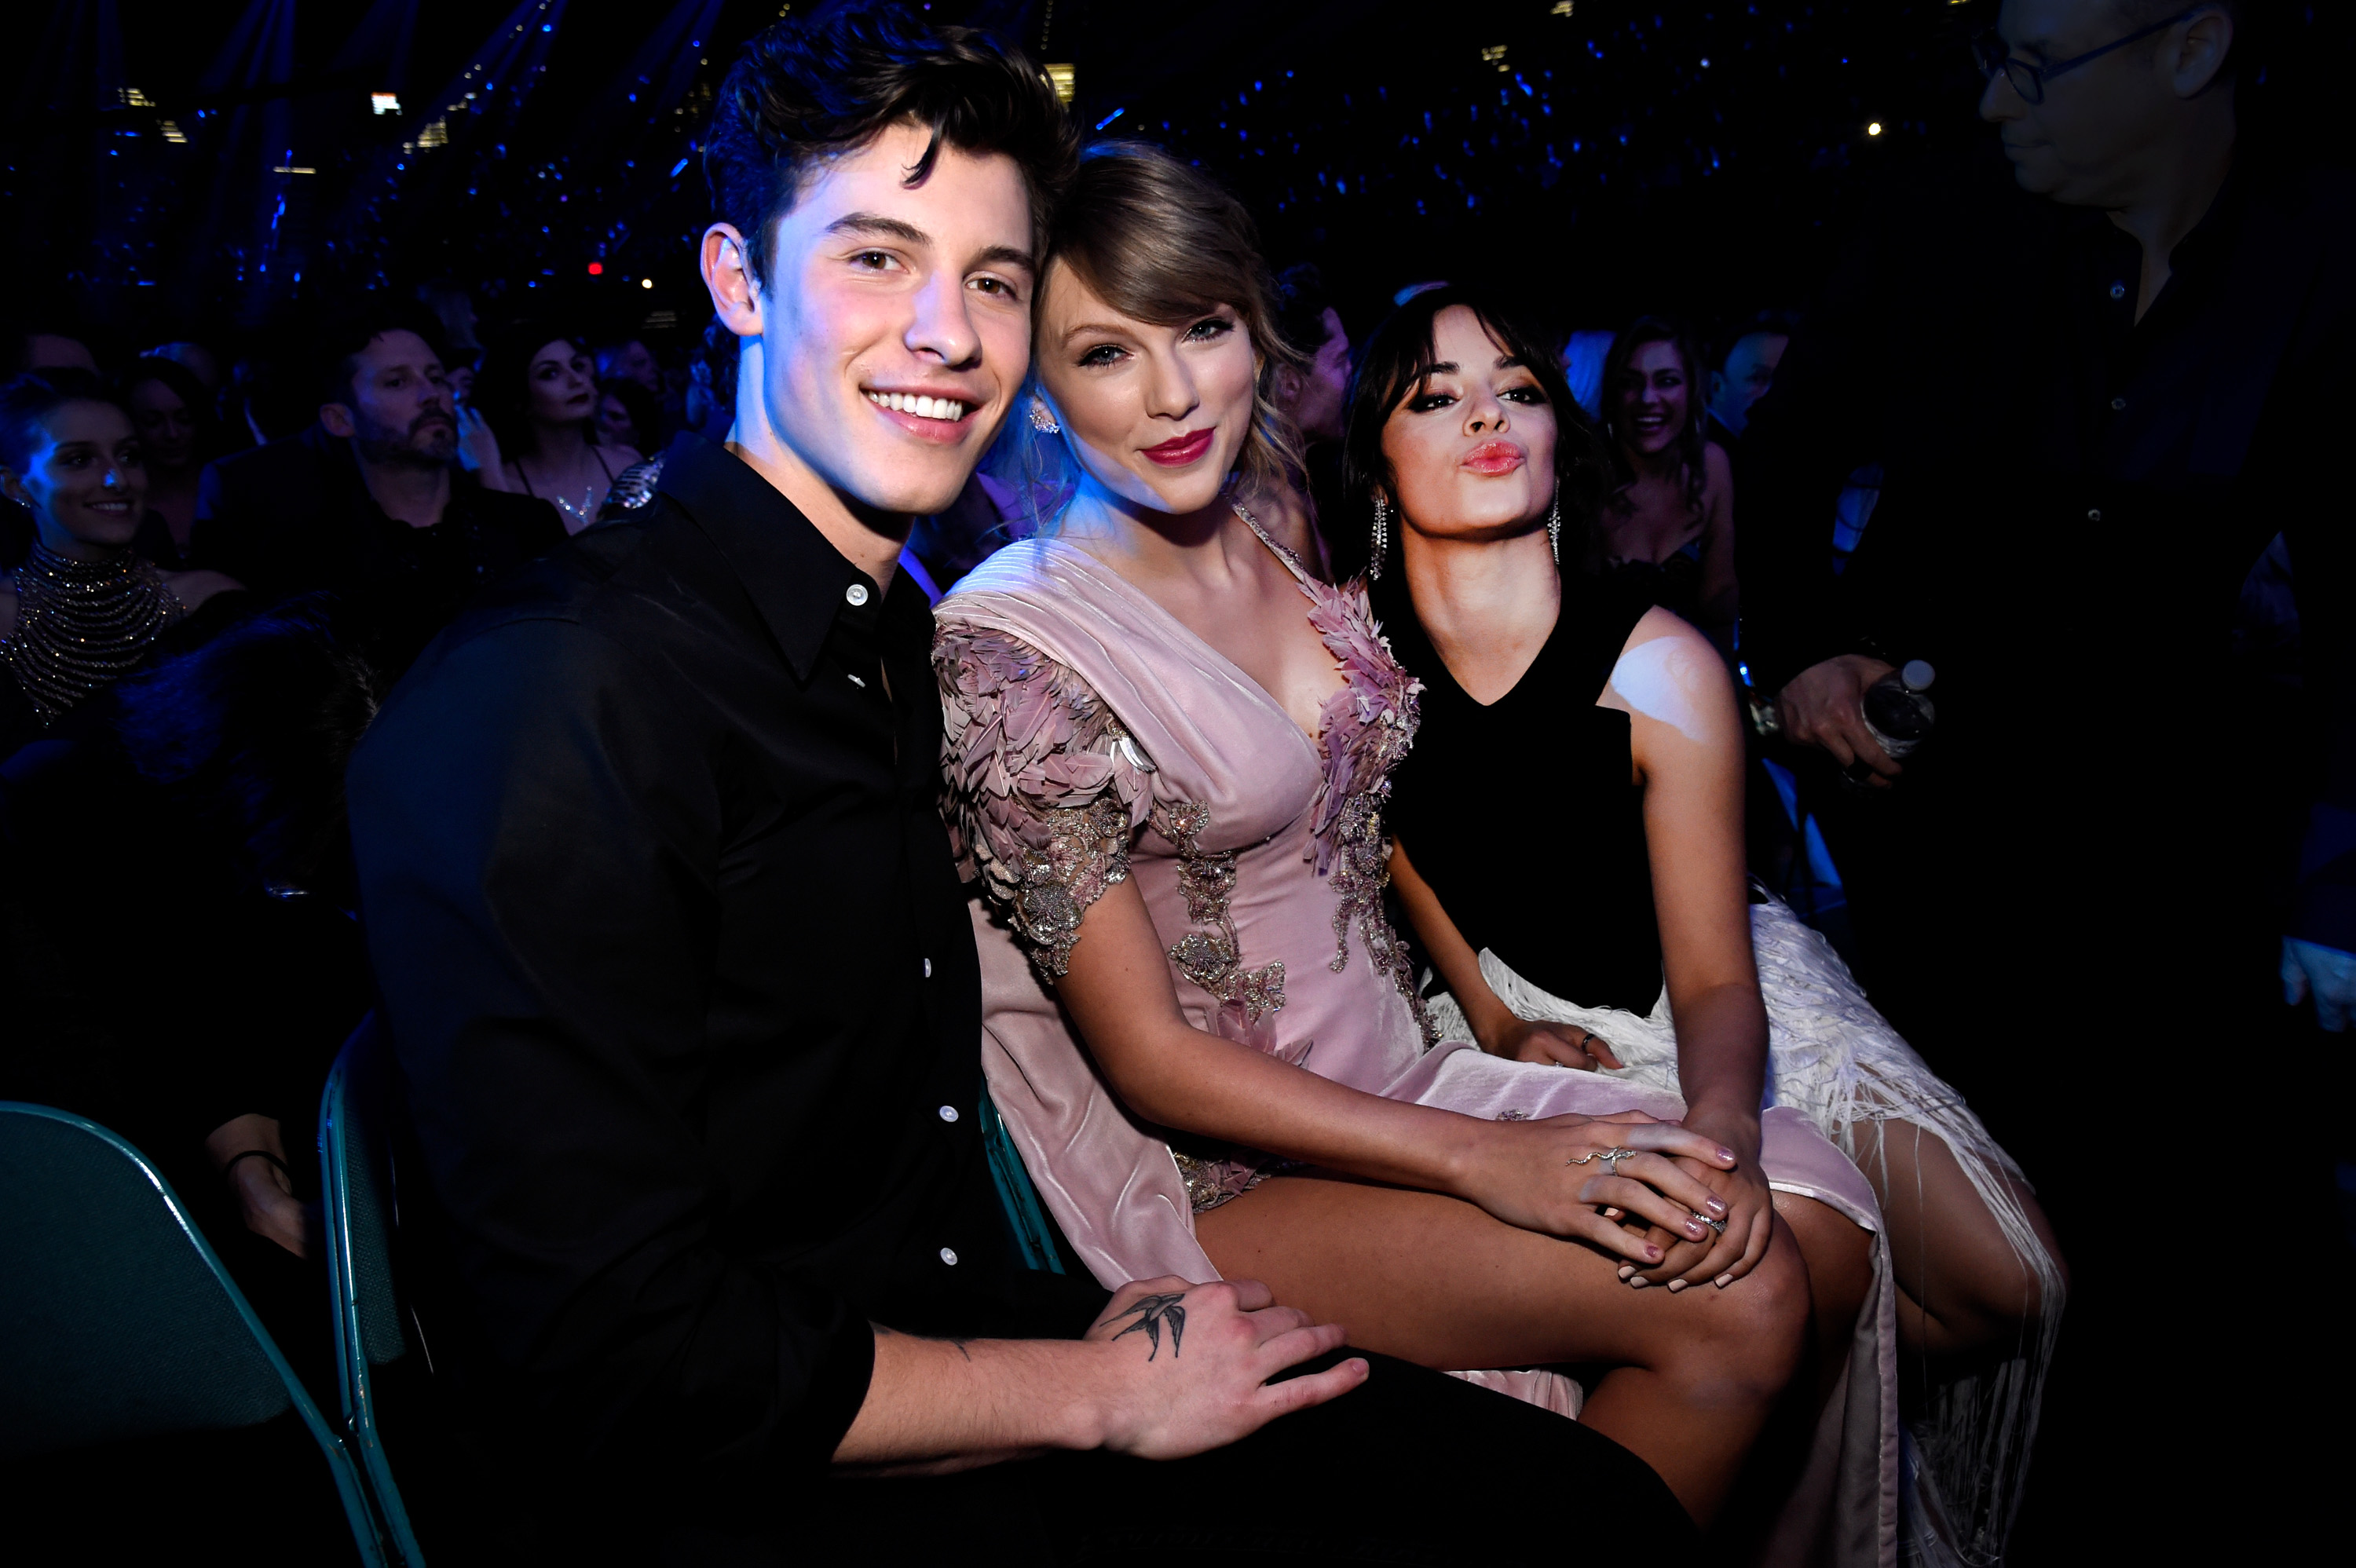 shawn-mendes-taylor-swift-camila-cabello